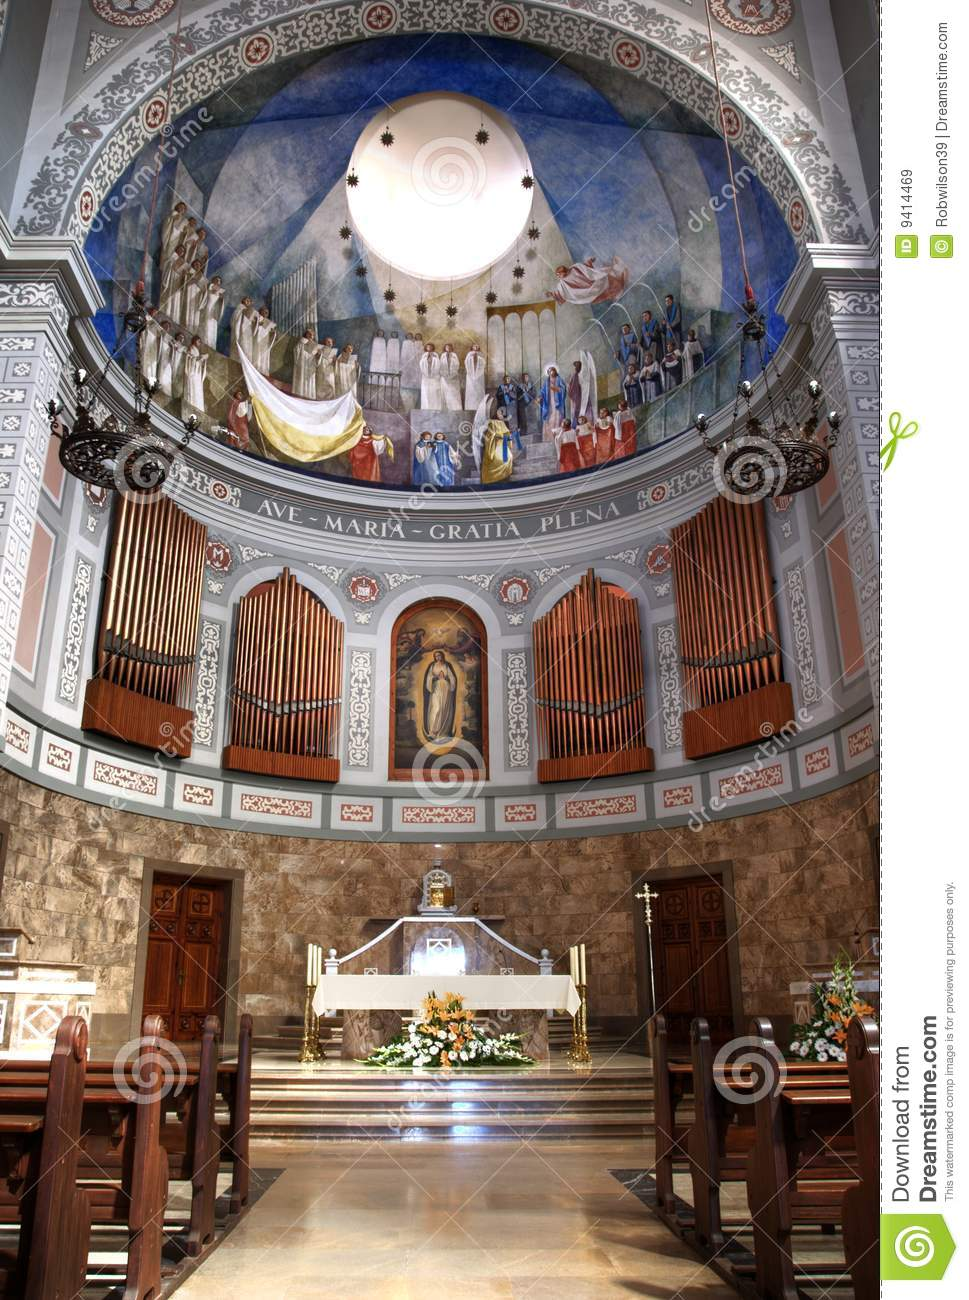 church alter in europe stock image image of decorated